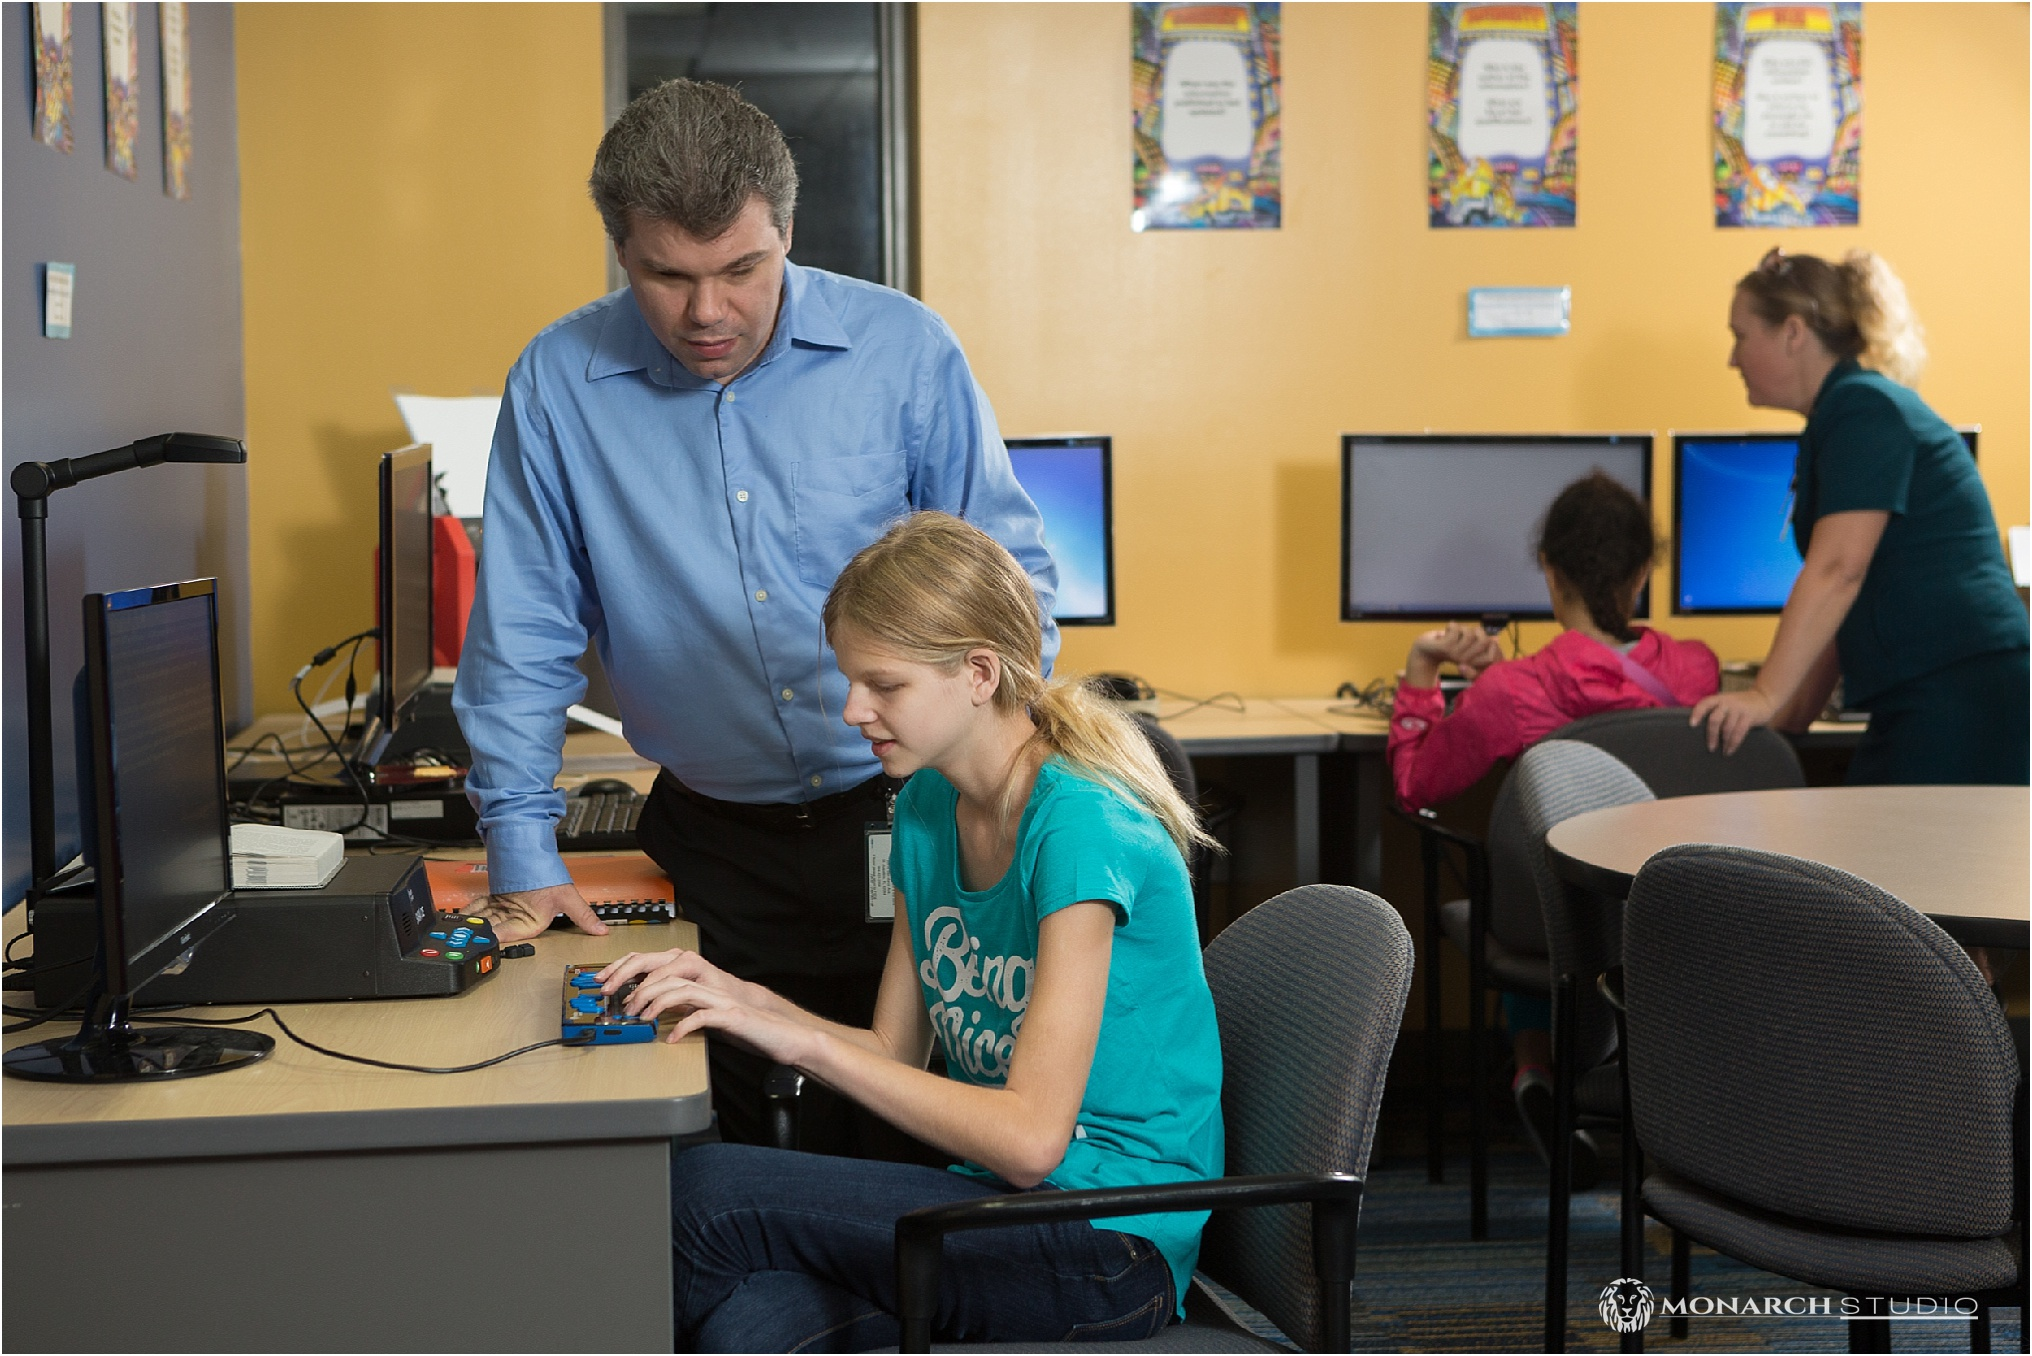 academic-marketing-photography-special-education-student-life-028.jpg